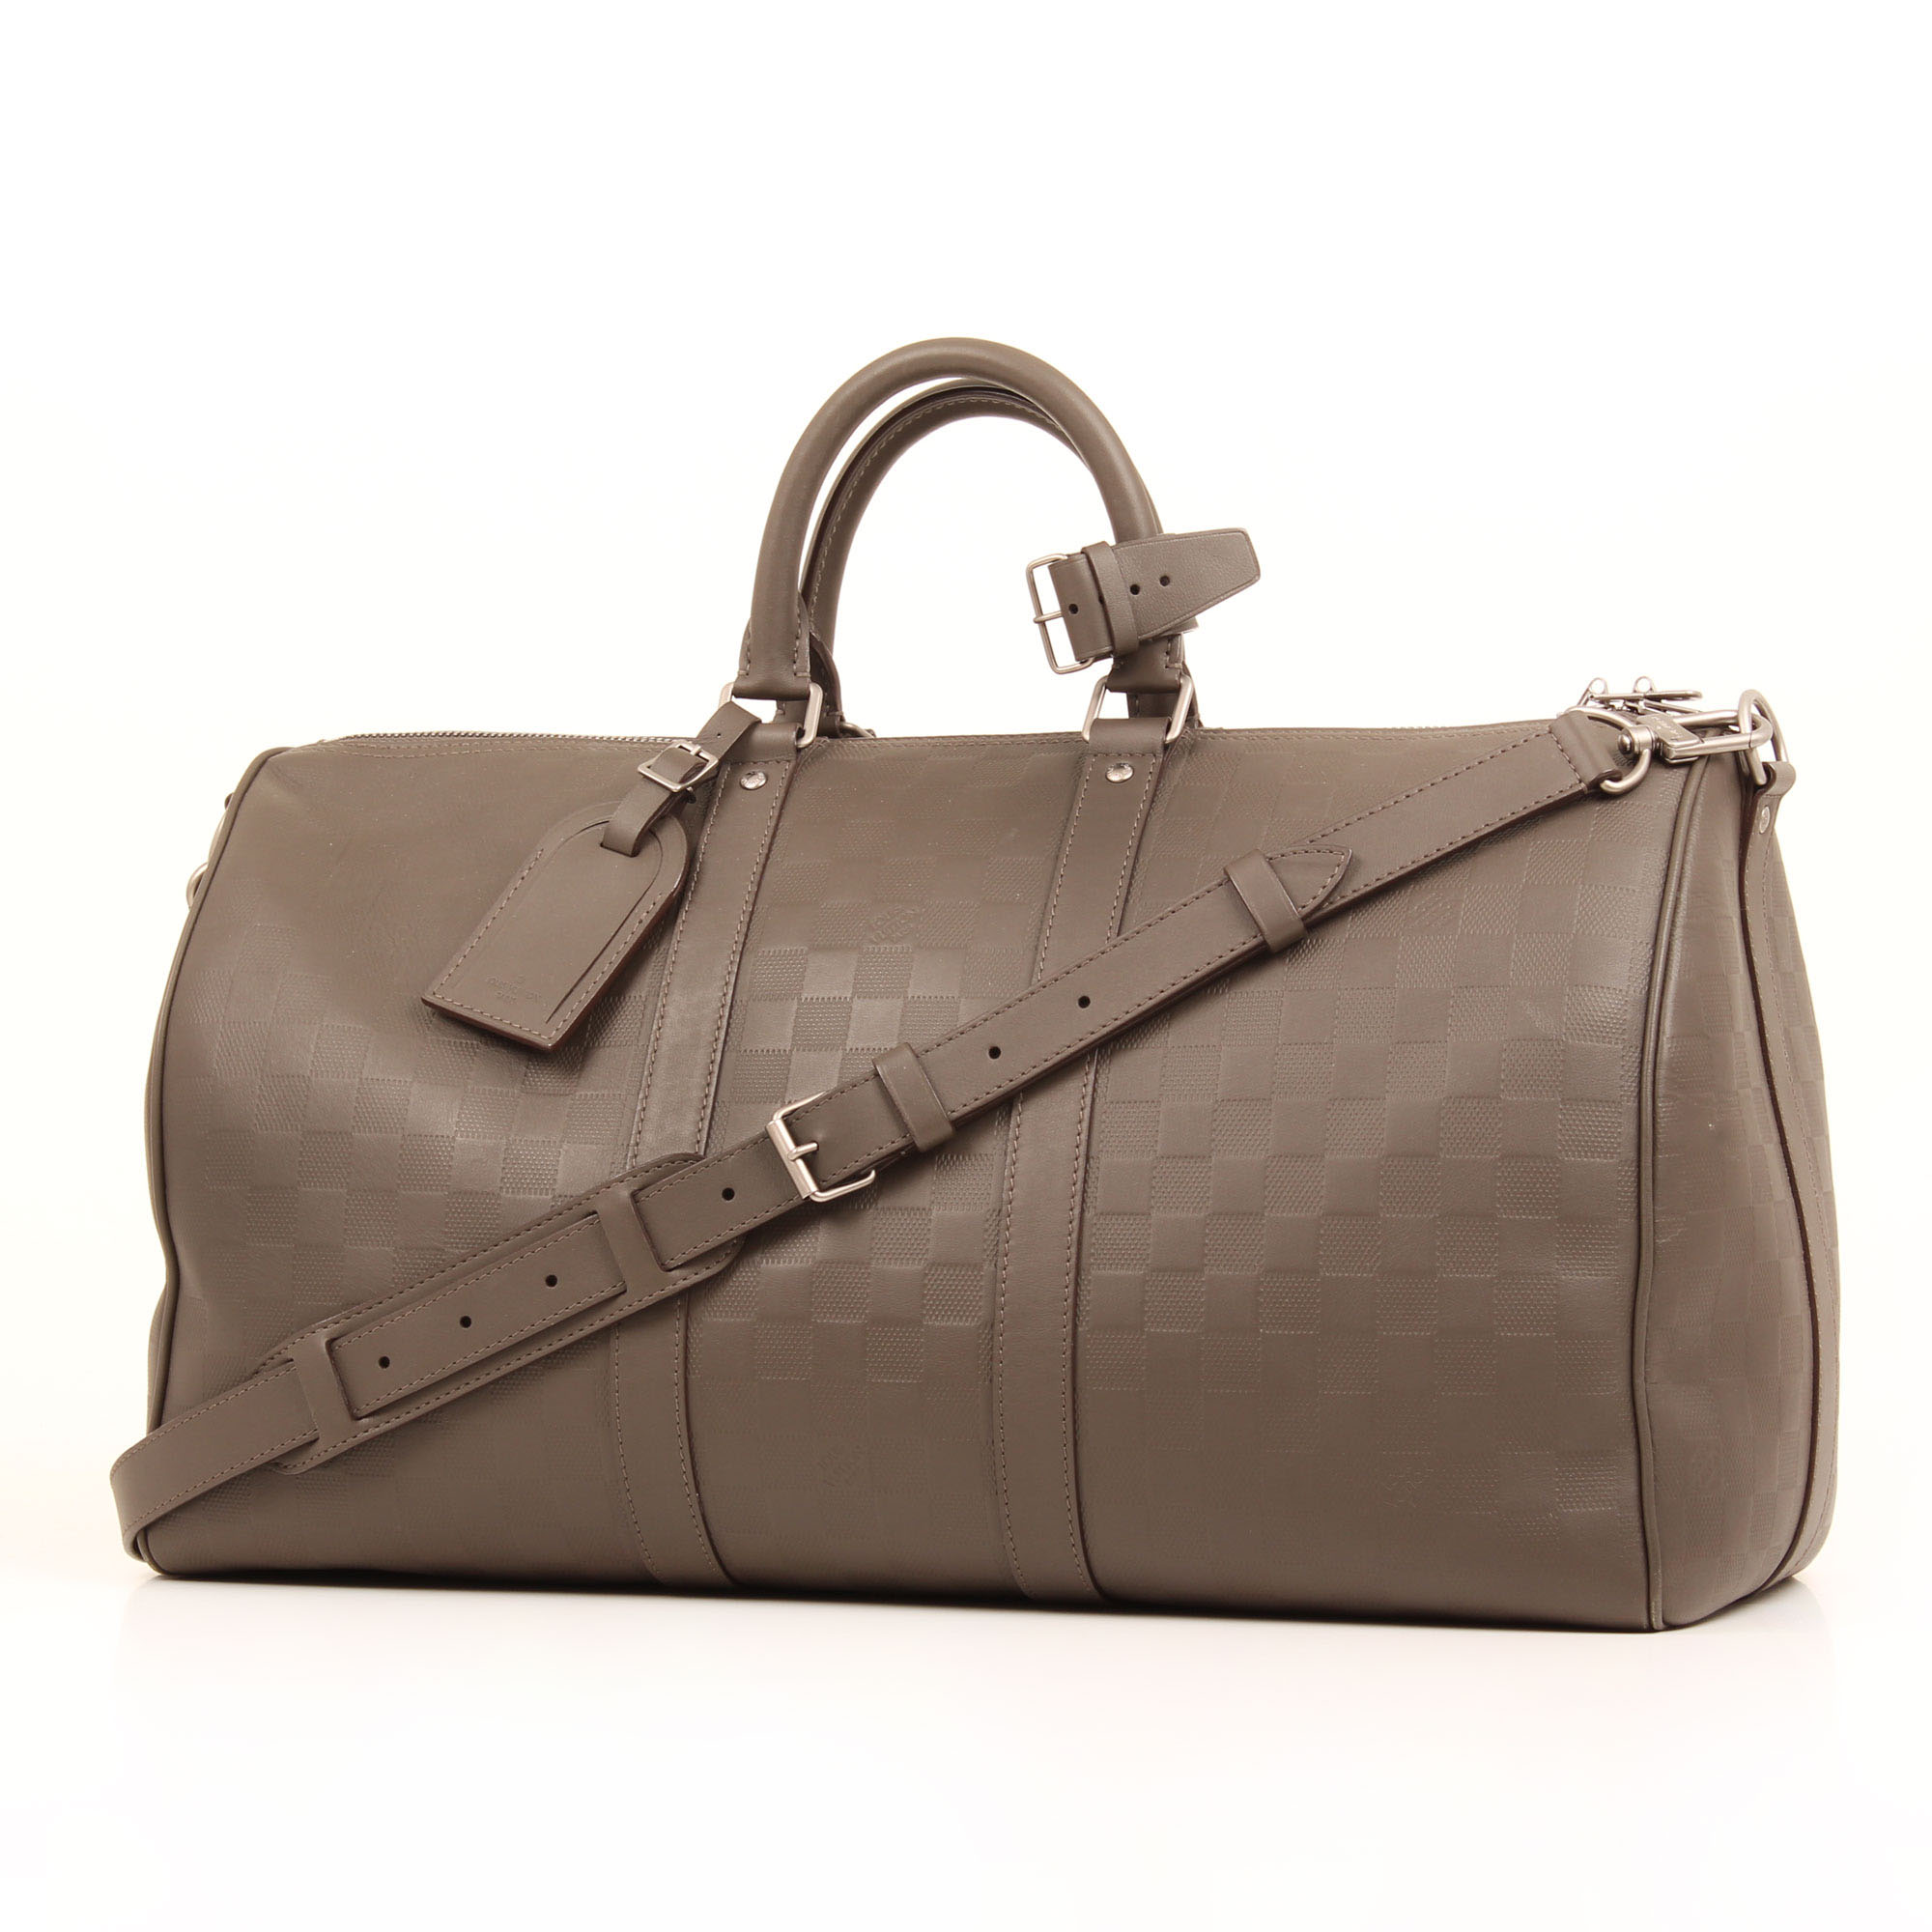 Strap and general image of louis vuitton keepall 45 damier infini bag